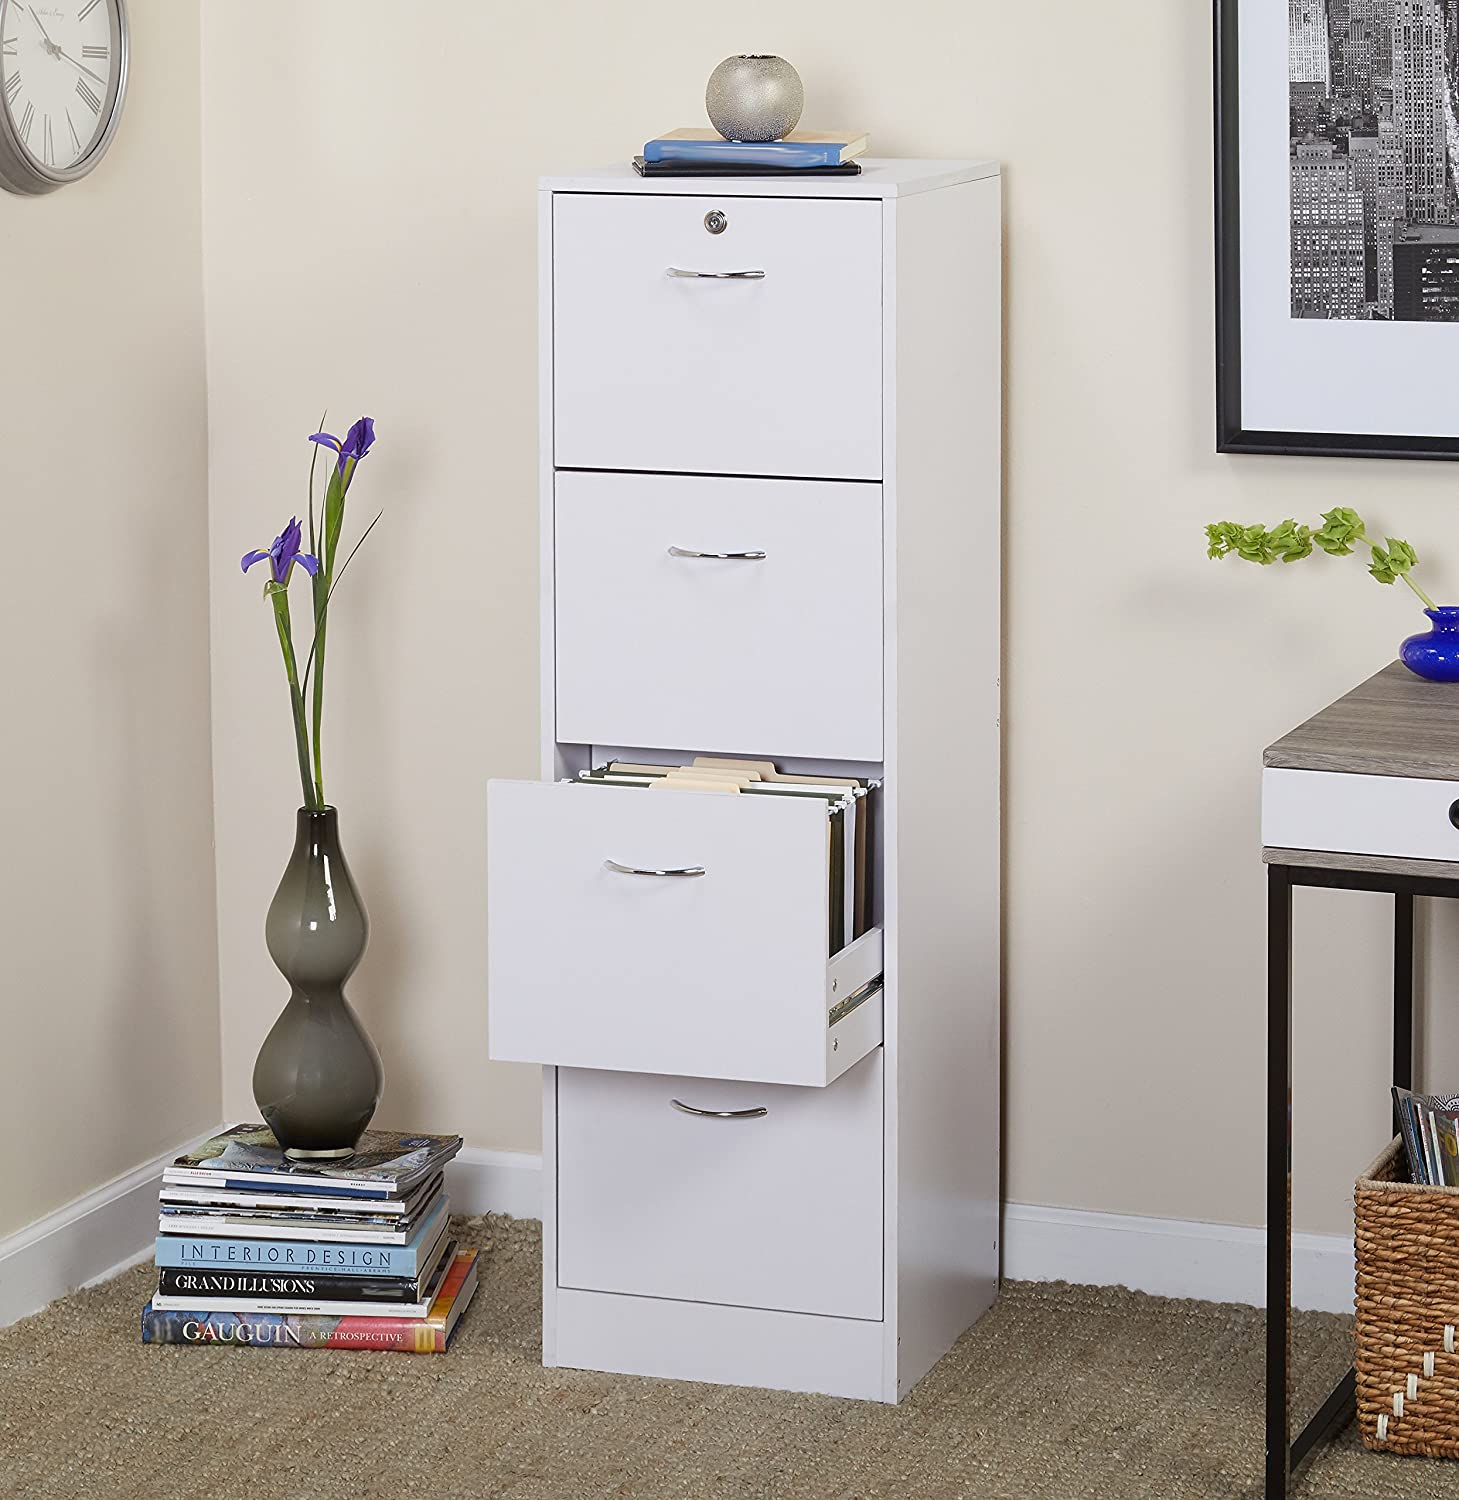 Four Drawer Vertical Wood Lockable File Cabinet, Safeguards Documents and Keeps Them Organized, Prevents Your Papers from Fading, Made of Durable Particleboard and Metal, White + Expert Guide eCom Rocket